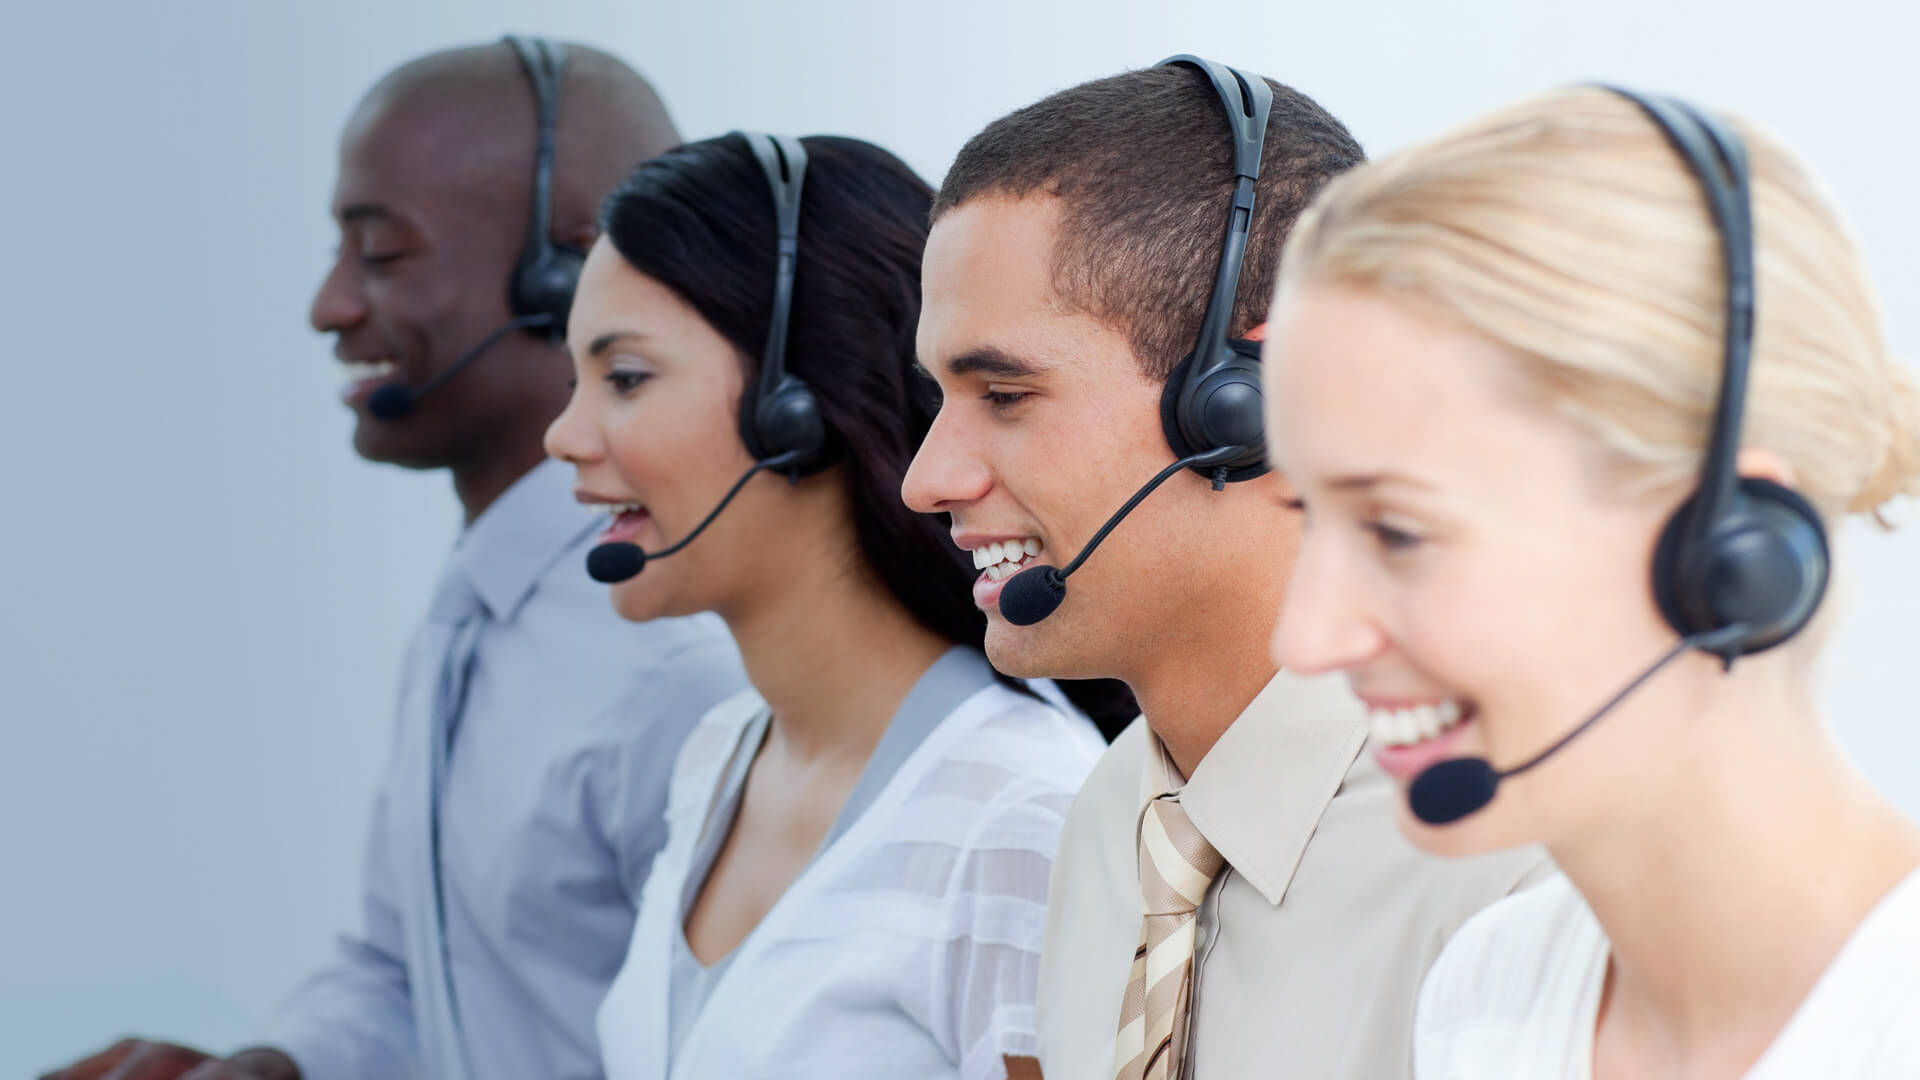 Customer Care - CPM Outsourced Sales, Field and Contact